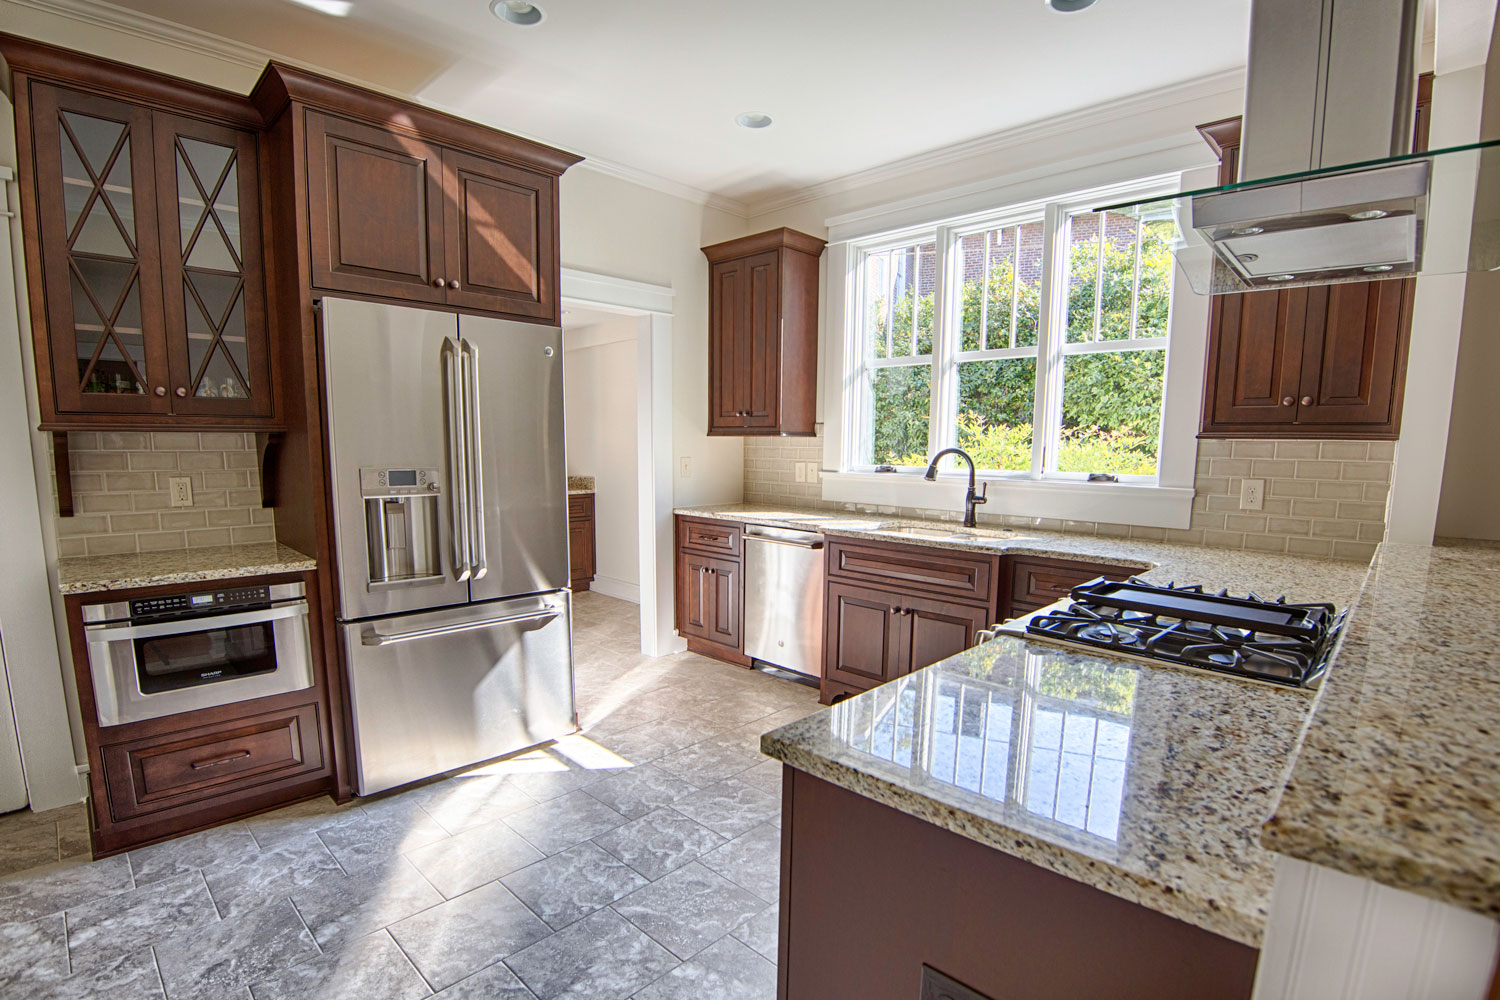 When Updating Old Kitchen Cabinets Should You Reface Or Replace Toulmin Kitchen Bath